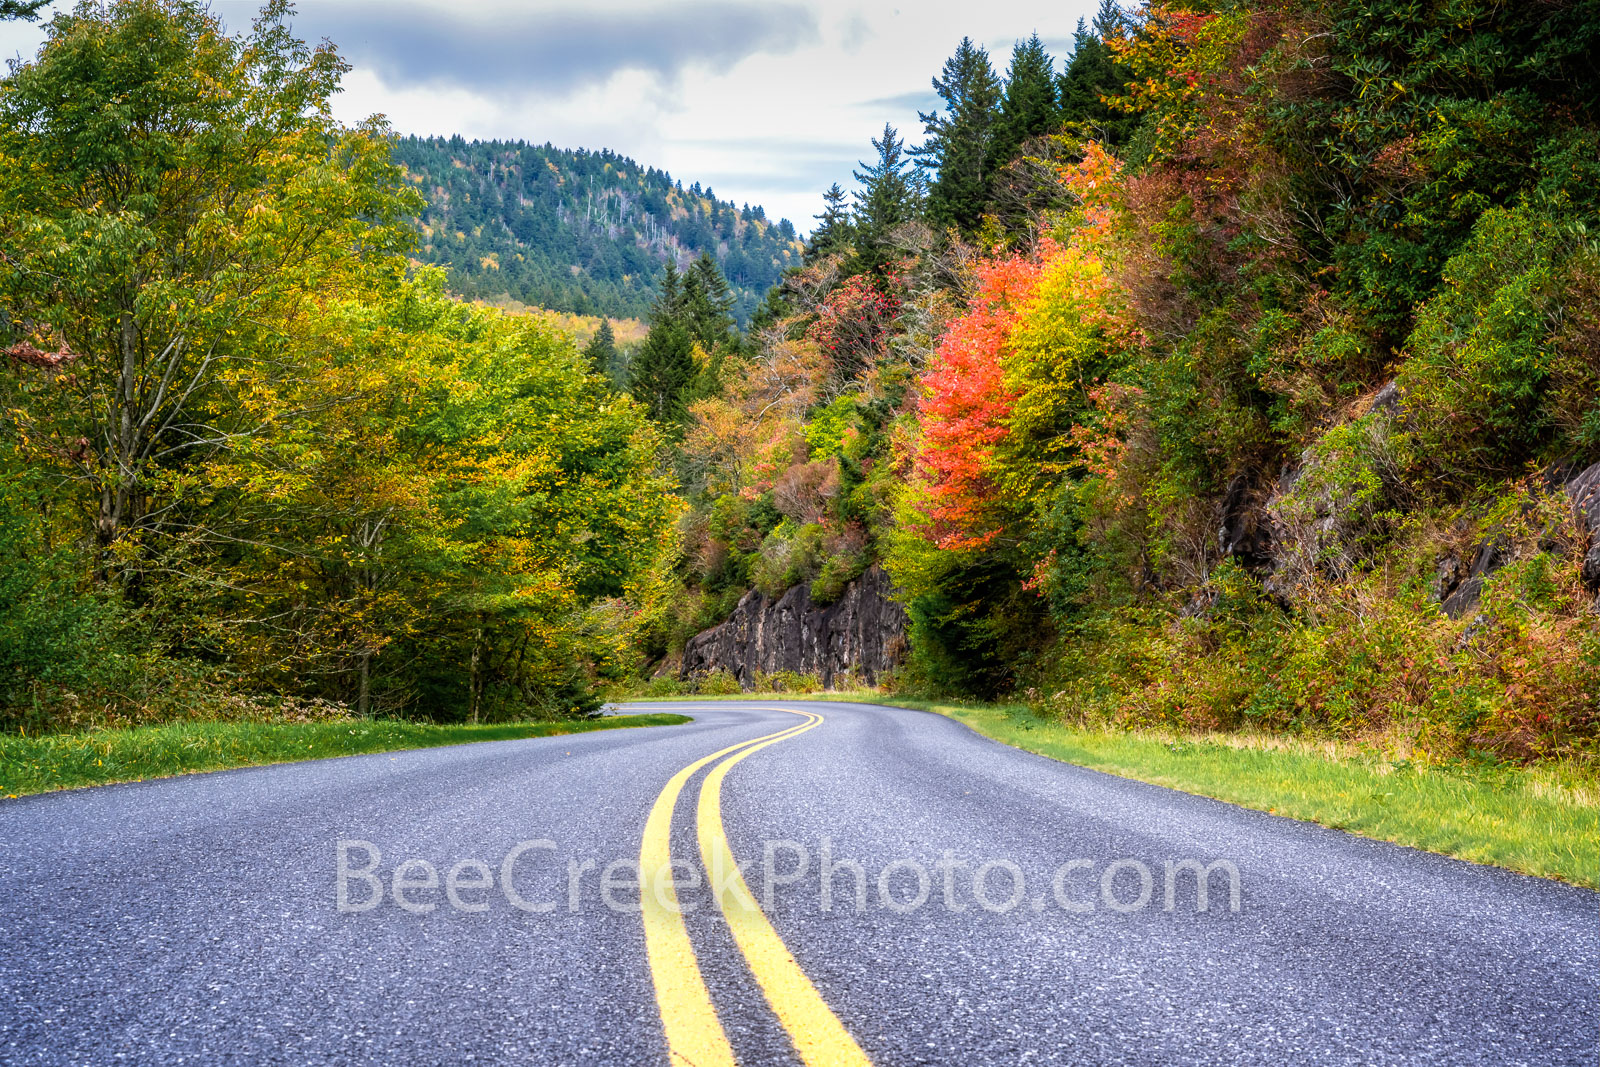 blue ridge parkway, fall, autumn, scenic, smokies, smoky mountain, great smoky mountains national park, mountains, scenic, views, north carolina, tennessee, blue ridge parkway, forest, pine, tree, photo